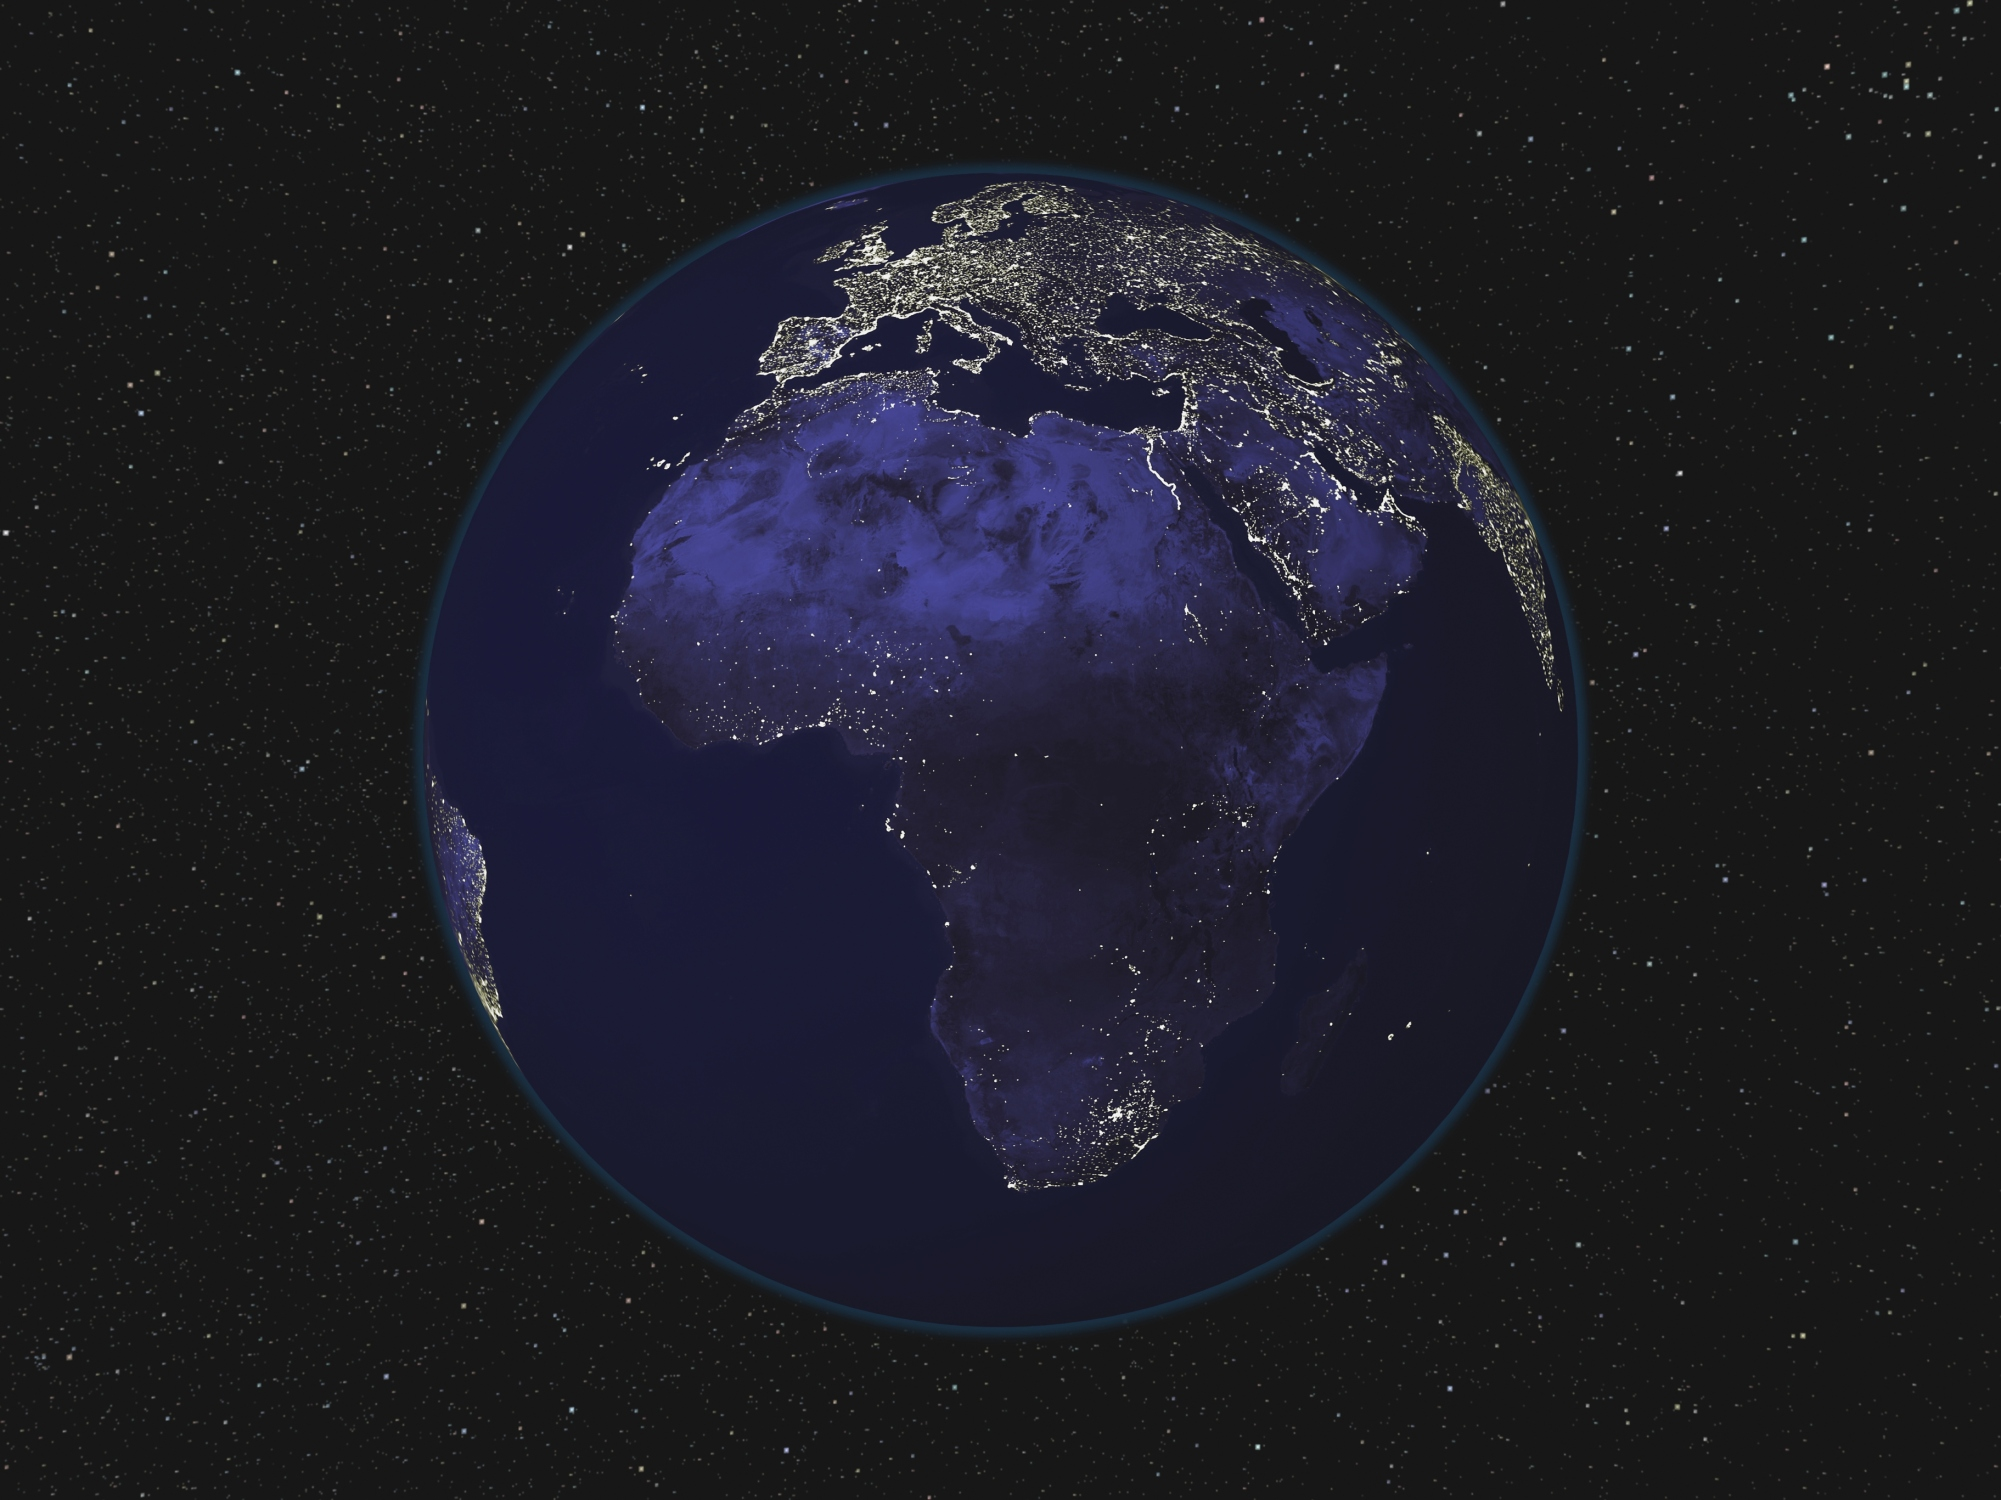 Wider Energy Access Planning To Make It Universal